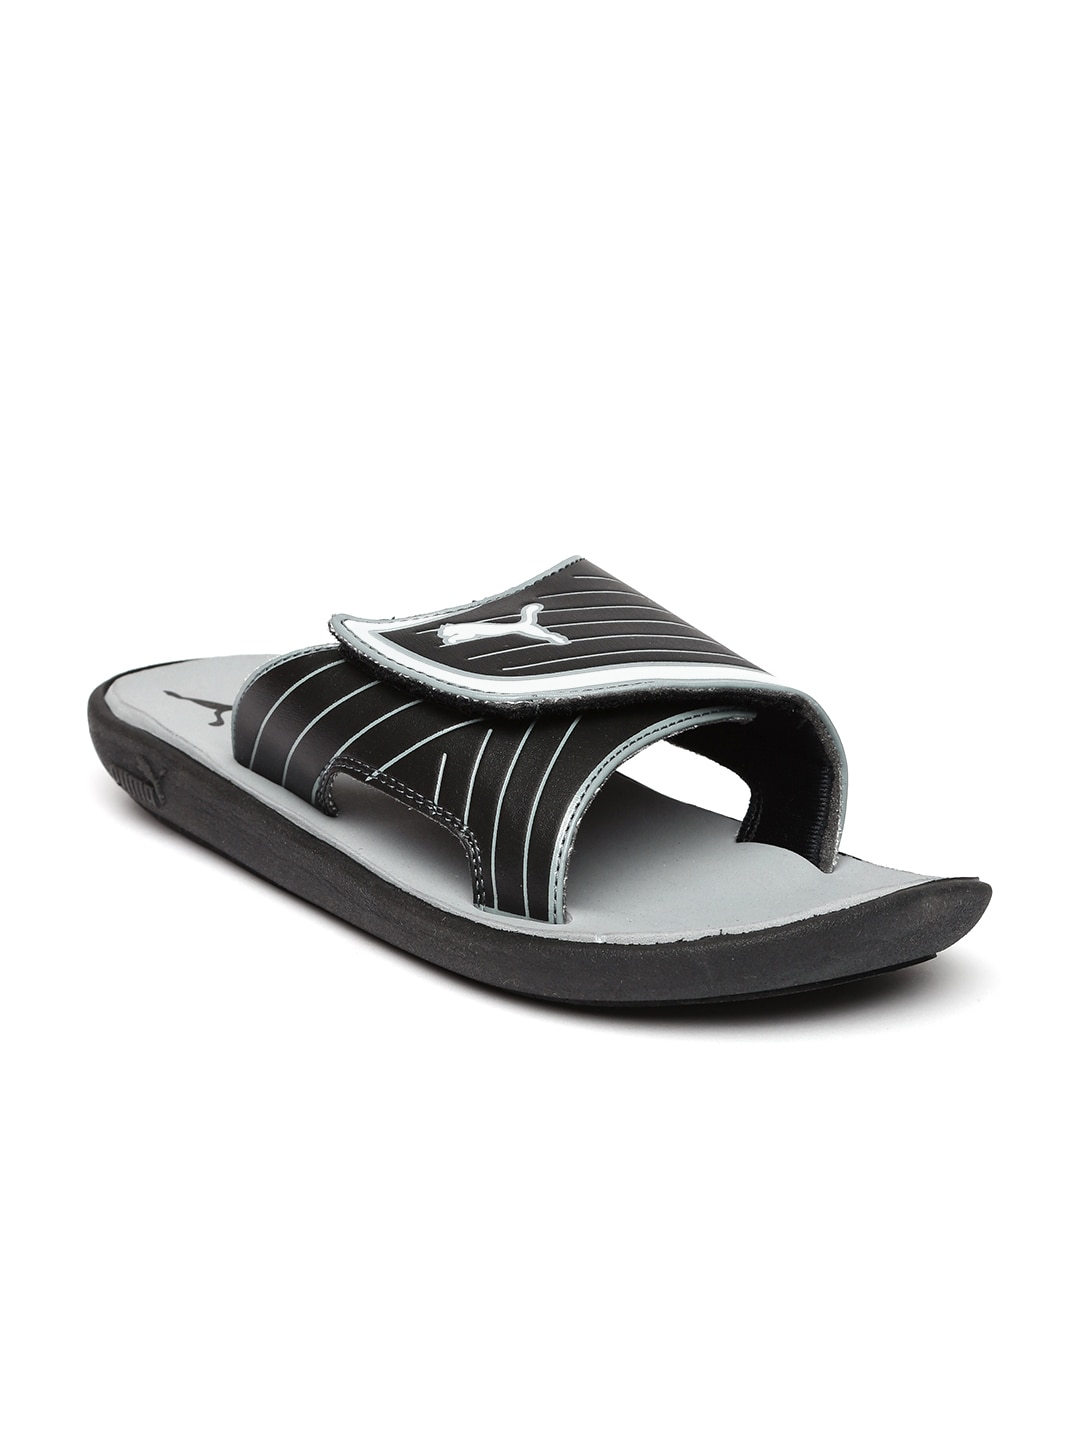 c3e542773e5 Puma Blankets Quilts And Dohars Flip Flops Sandals - Buy Puma Blankets  Quilts And Dohars Flip Flops Sandals online in India